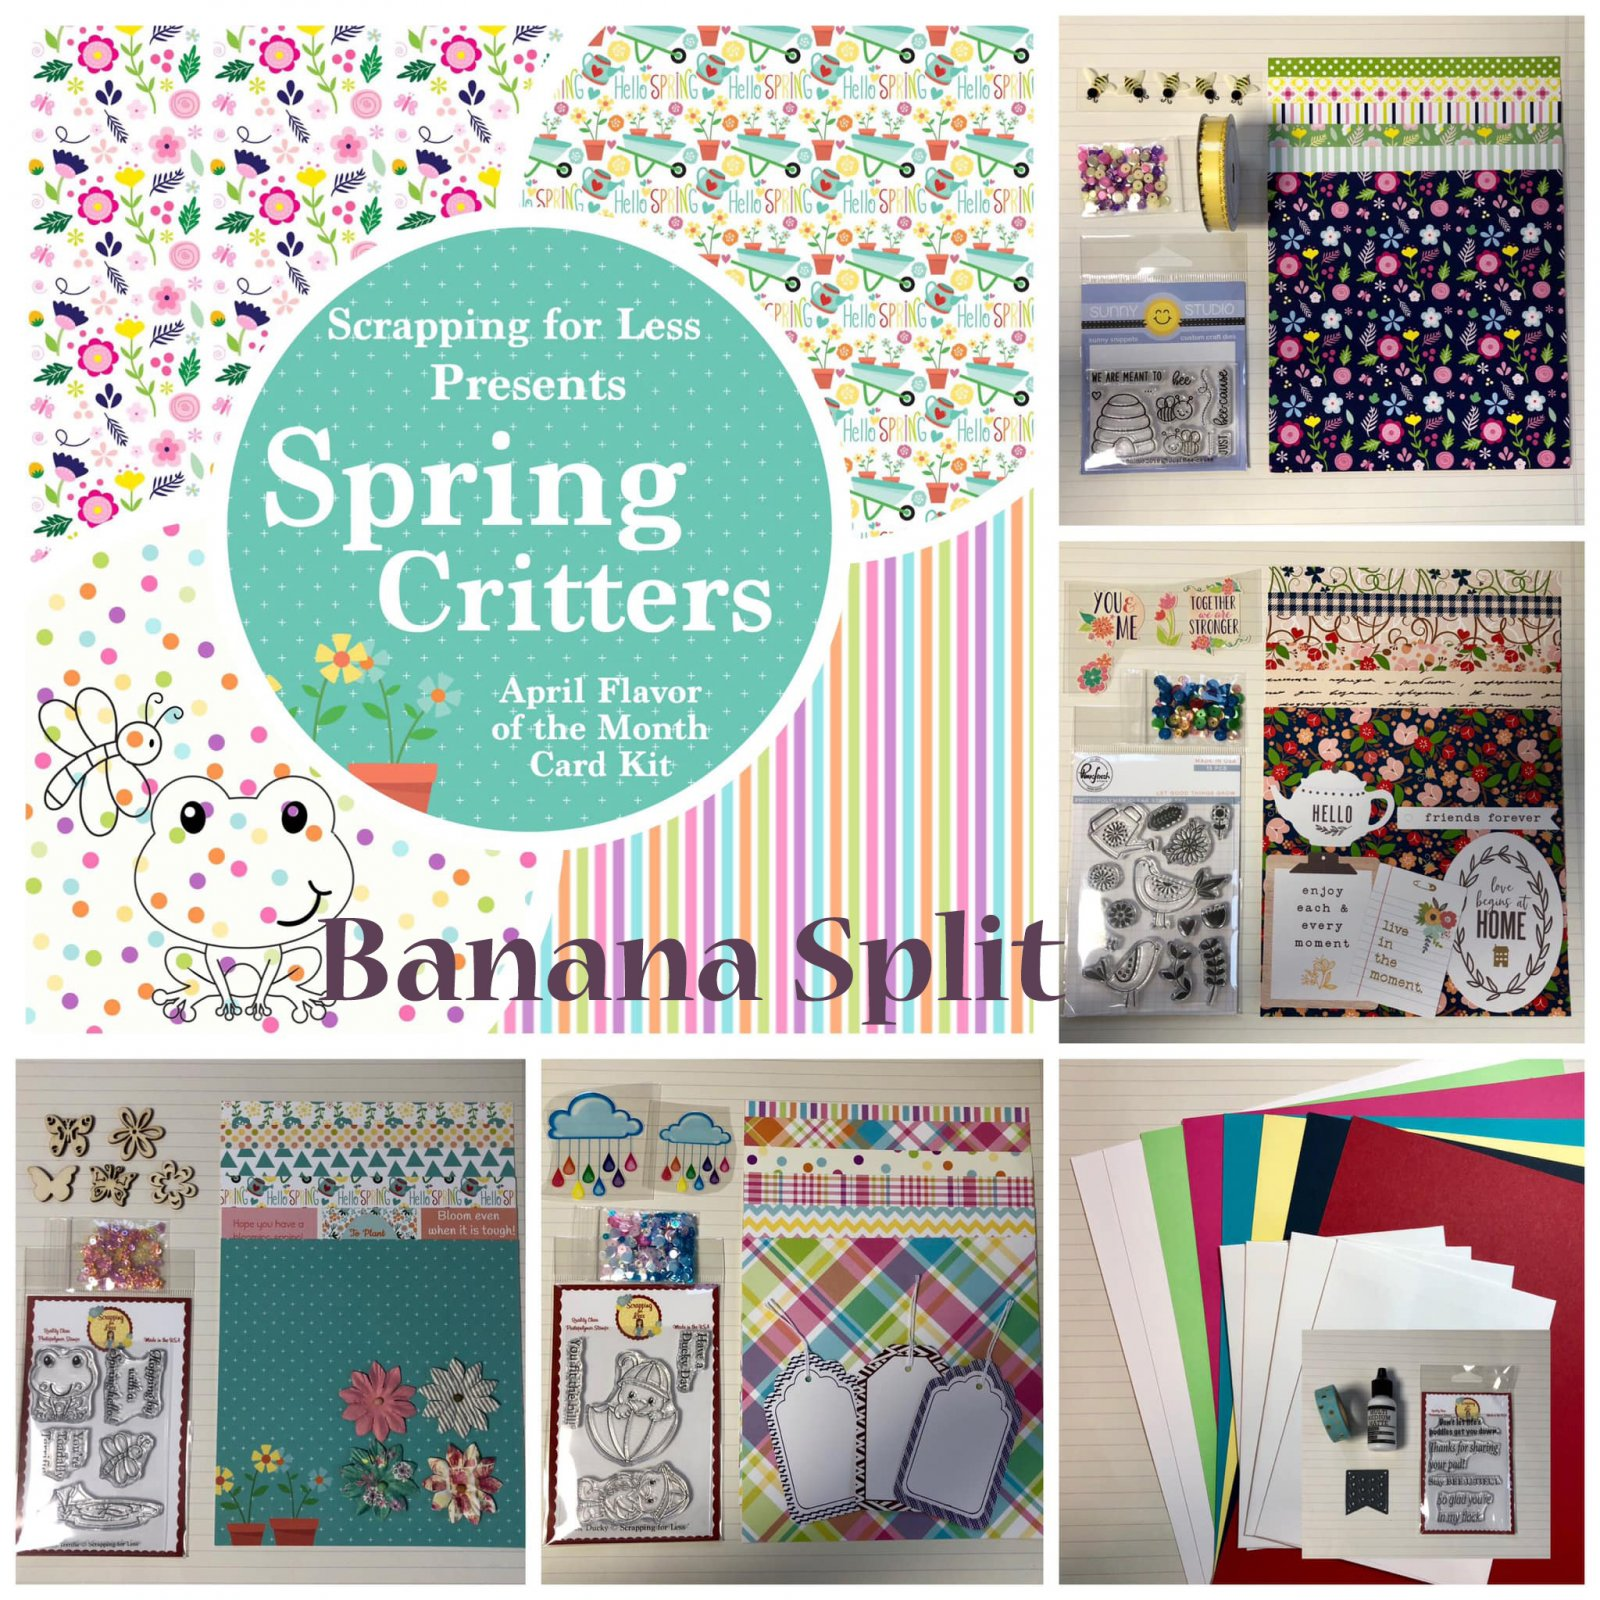 April 2019 Flavor of the Month Banana Split Spring Critters